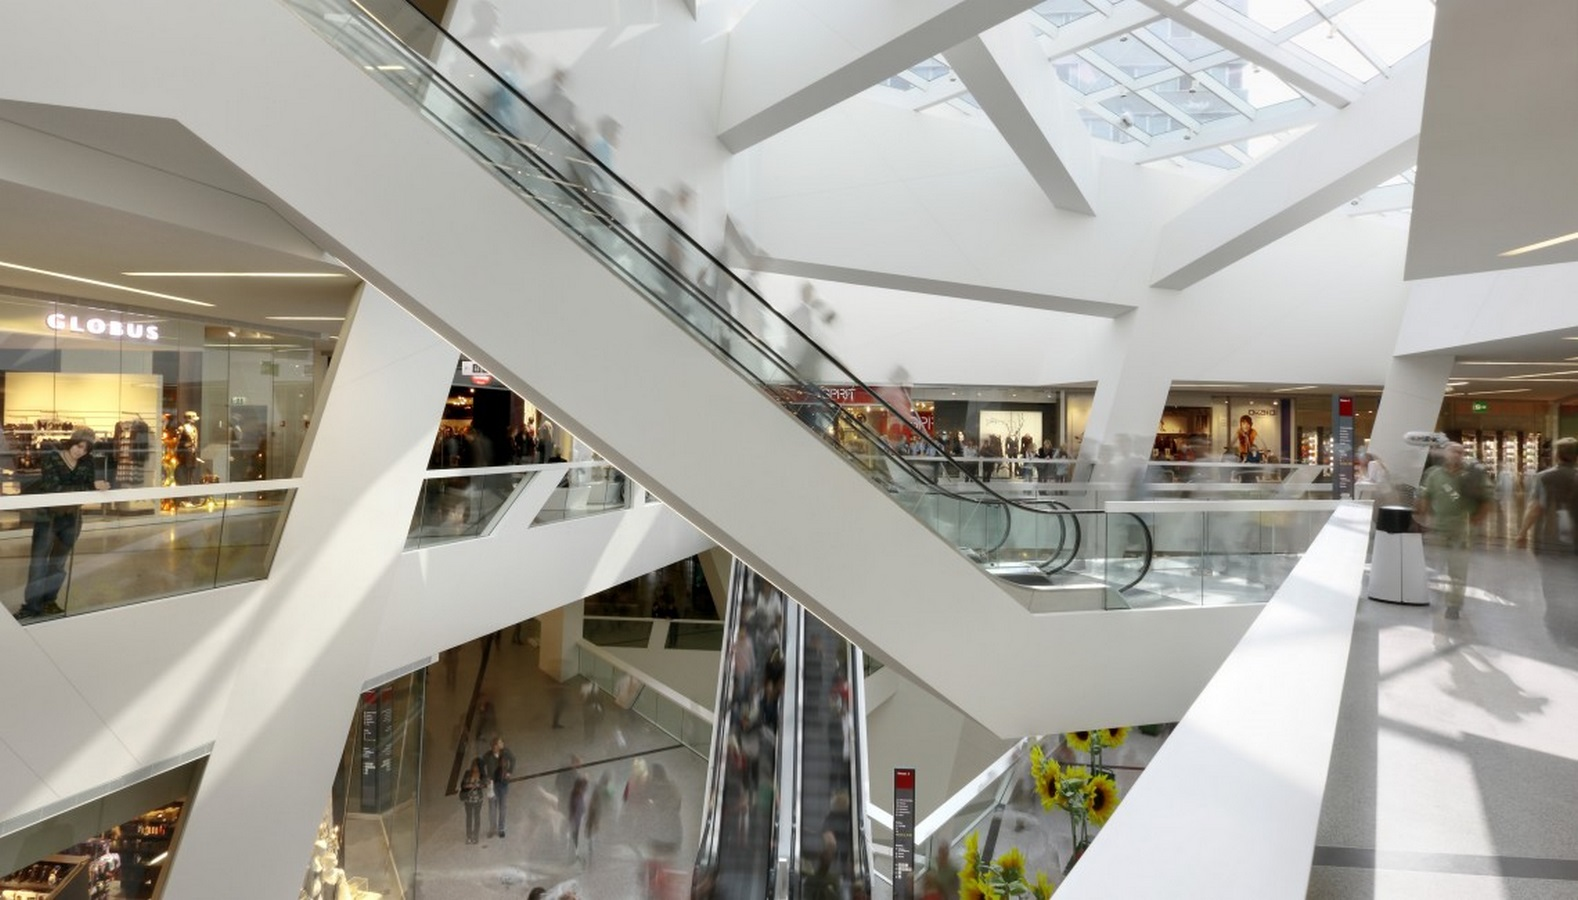 Westside Shopping and Leisure Centre by Daniel Libeskind: Unification of commerce, culture and leisure - Sheet5